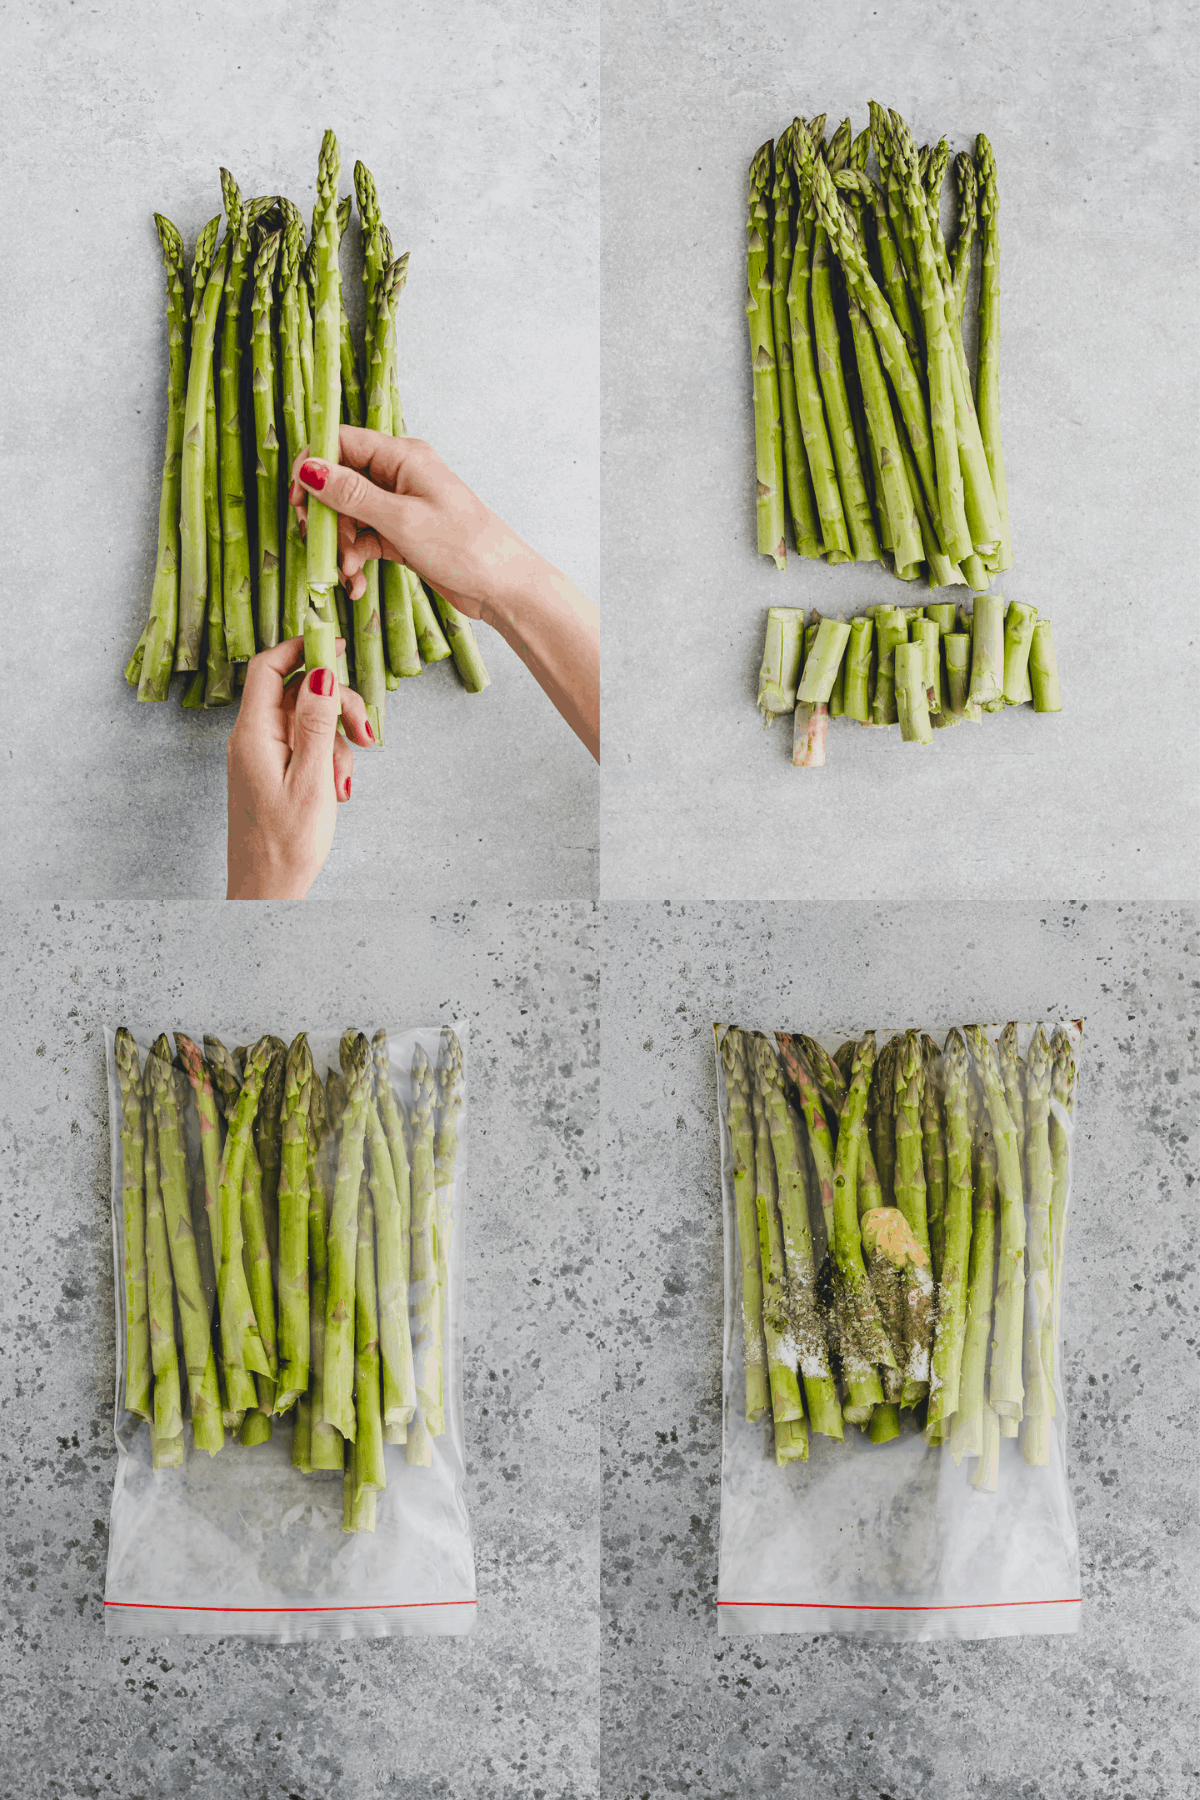 How To Grill Asparagus Recipe Step-1-4